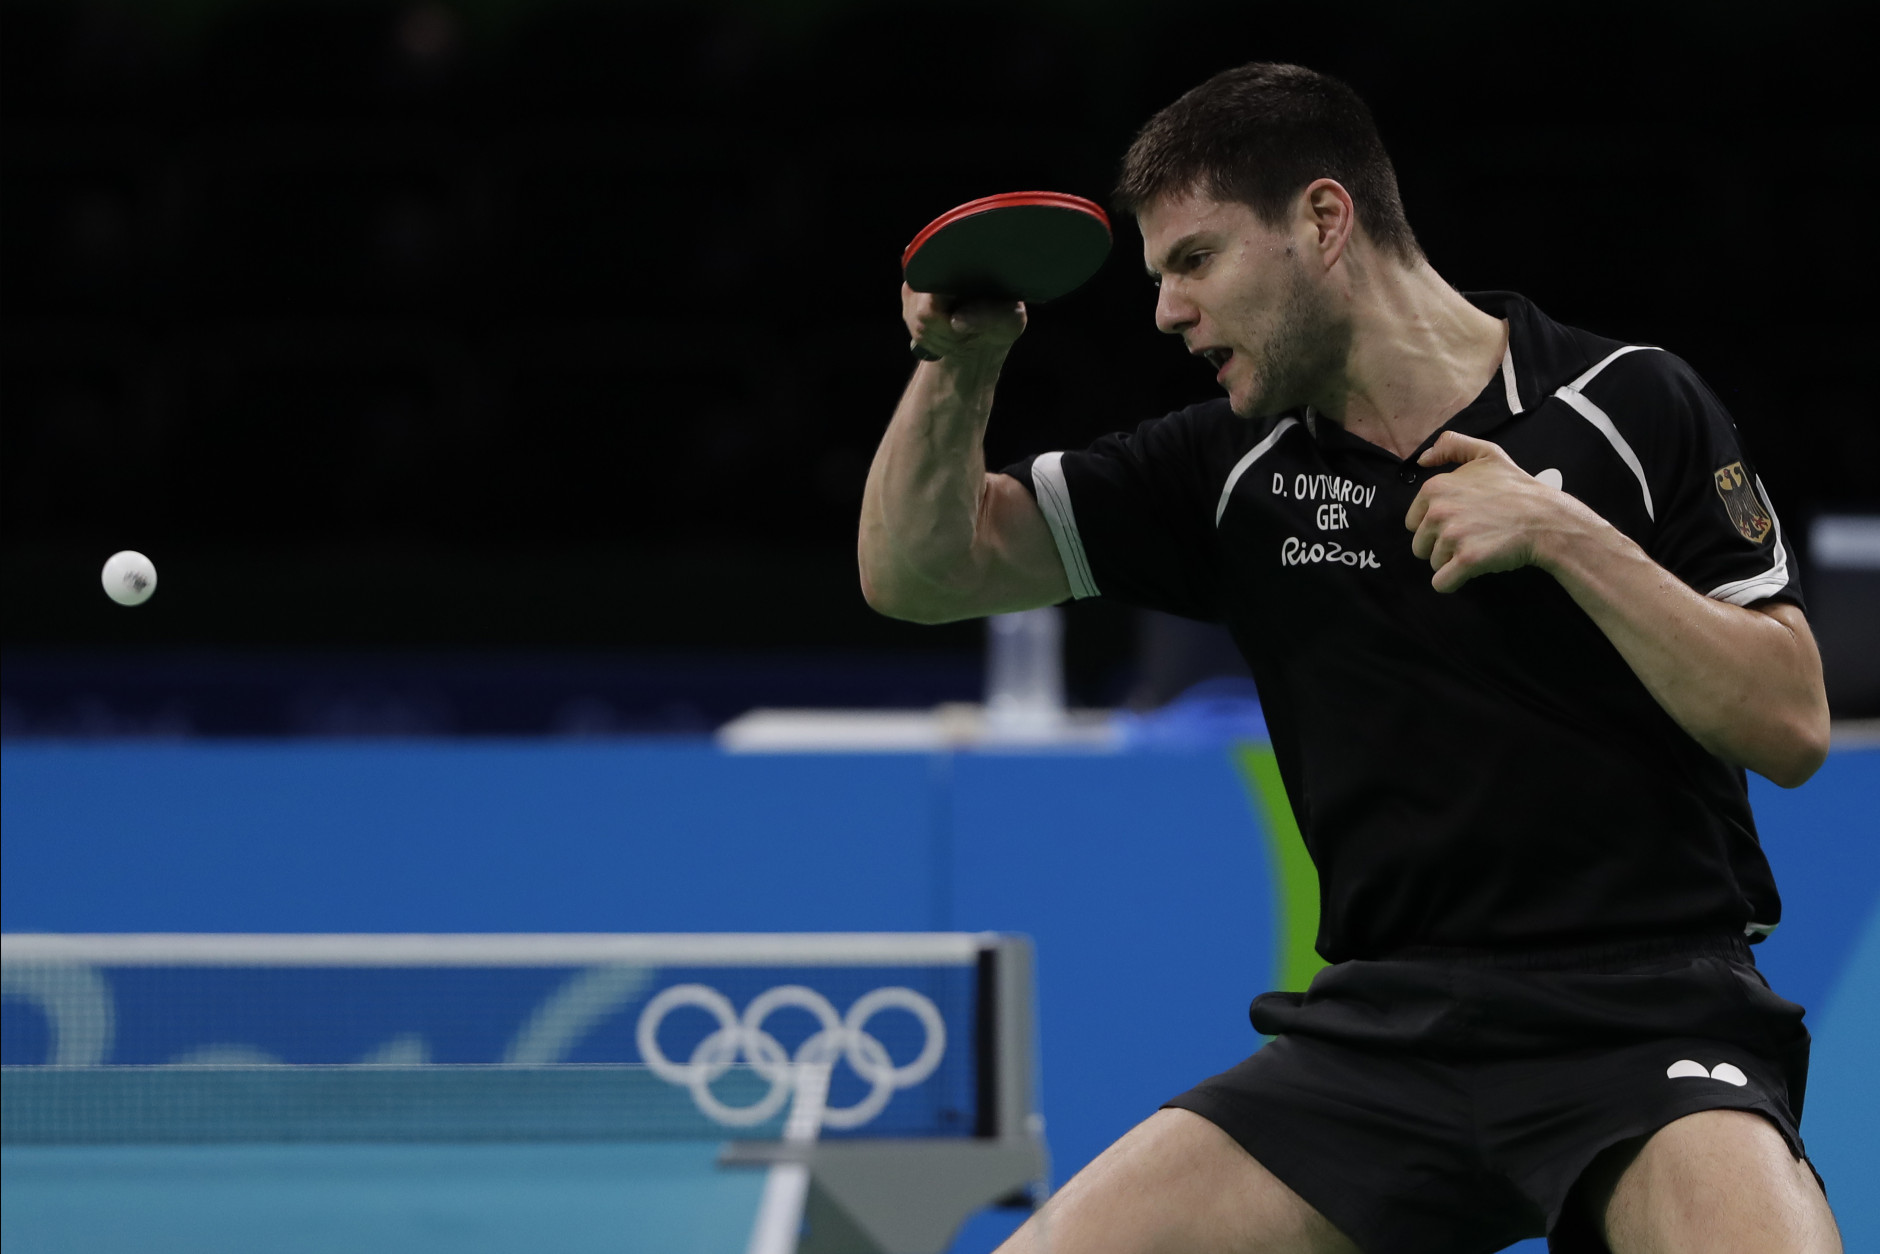 Germany's Dimitrij Ovtcharov throws a forehand during a table tennis training session ahead the 2016 Summer Olympics in Rio de Janeiro, Brazil, Wednesday, Aug. 3, 2016. (AP Photo/Petros Giannakouris)